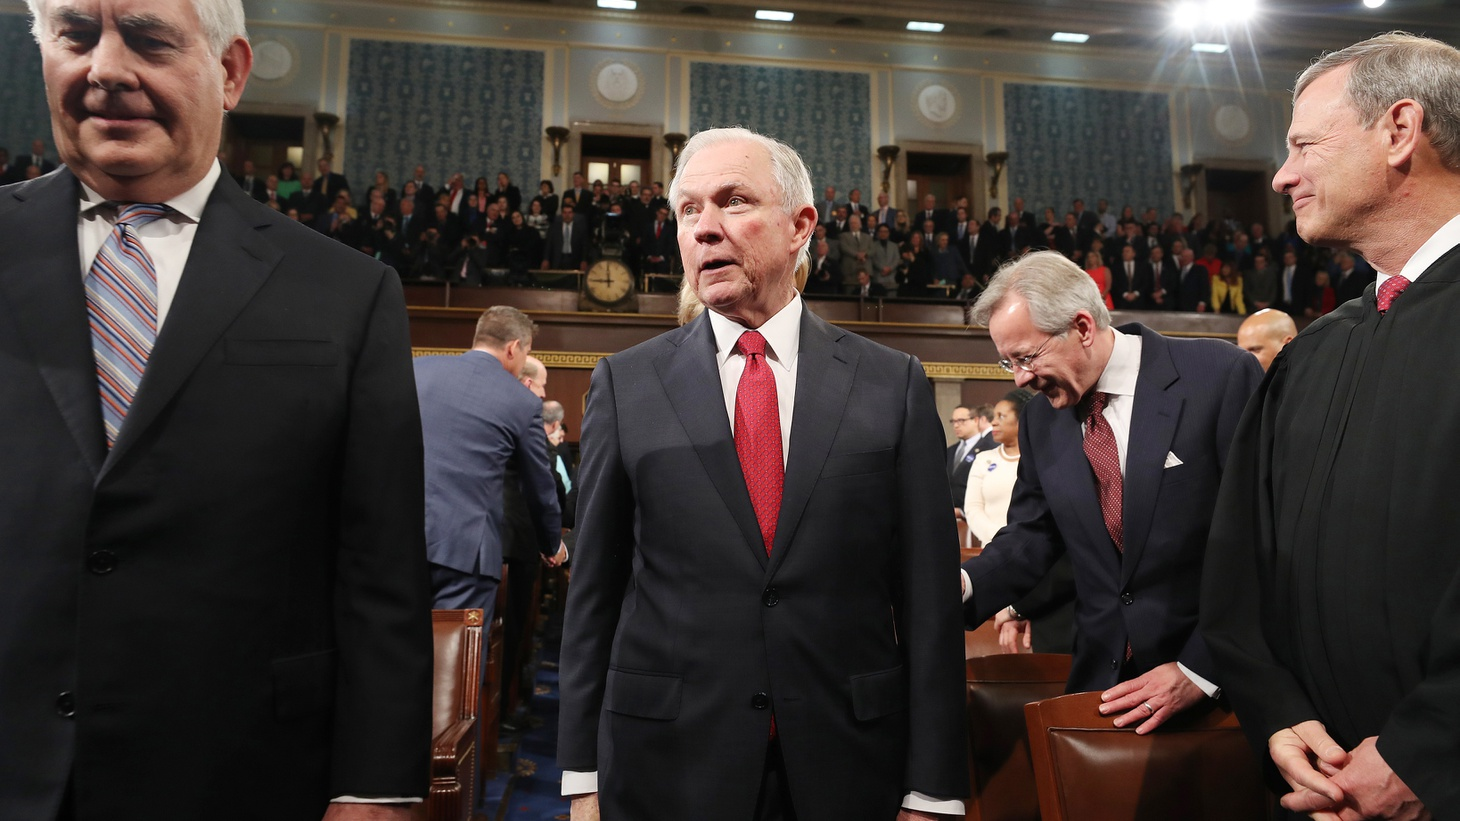 """Attorney General Jeff Sessions is accused of """"misleading"""" fellow Senators during his confirmation hearing — and possibly lying in response to written questions. It's all about whether he met with Russia's ambassador as a surrogate for candidate Donald Trump and an advisor to his presidential campaign."""